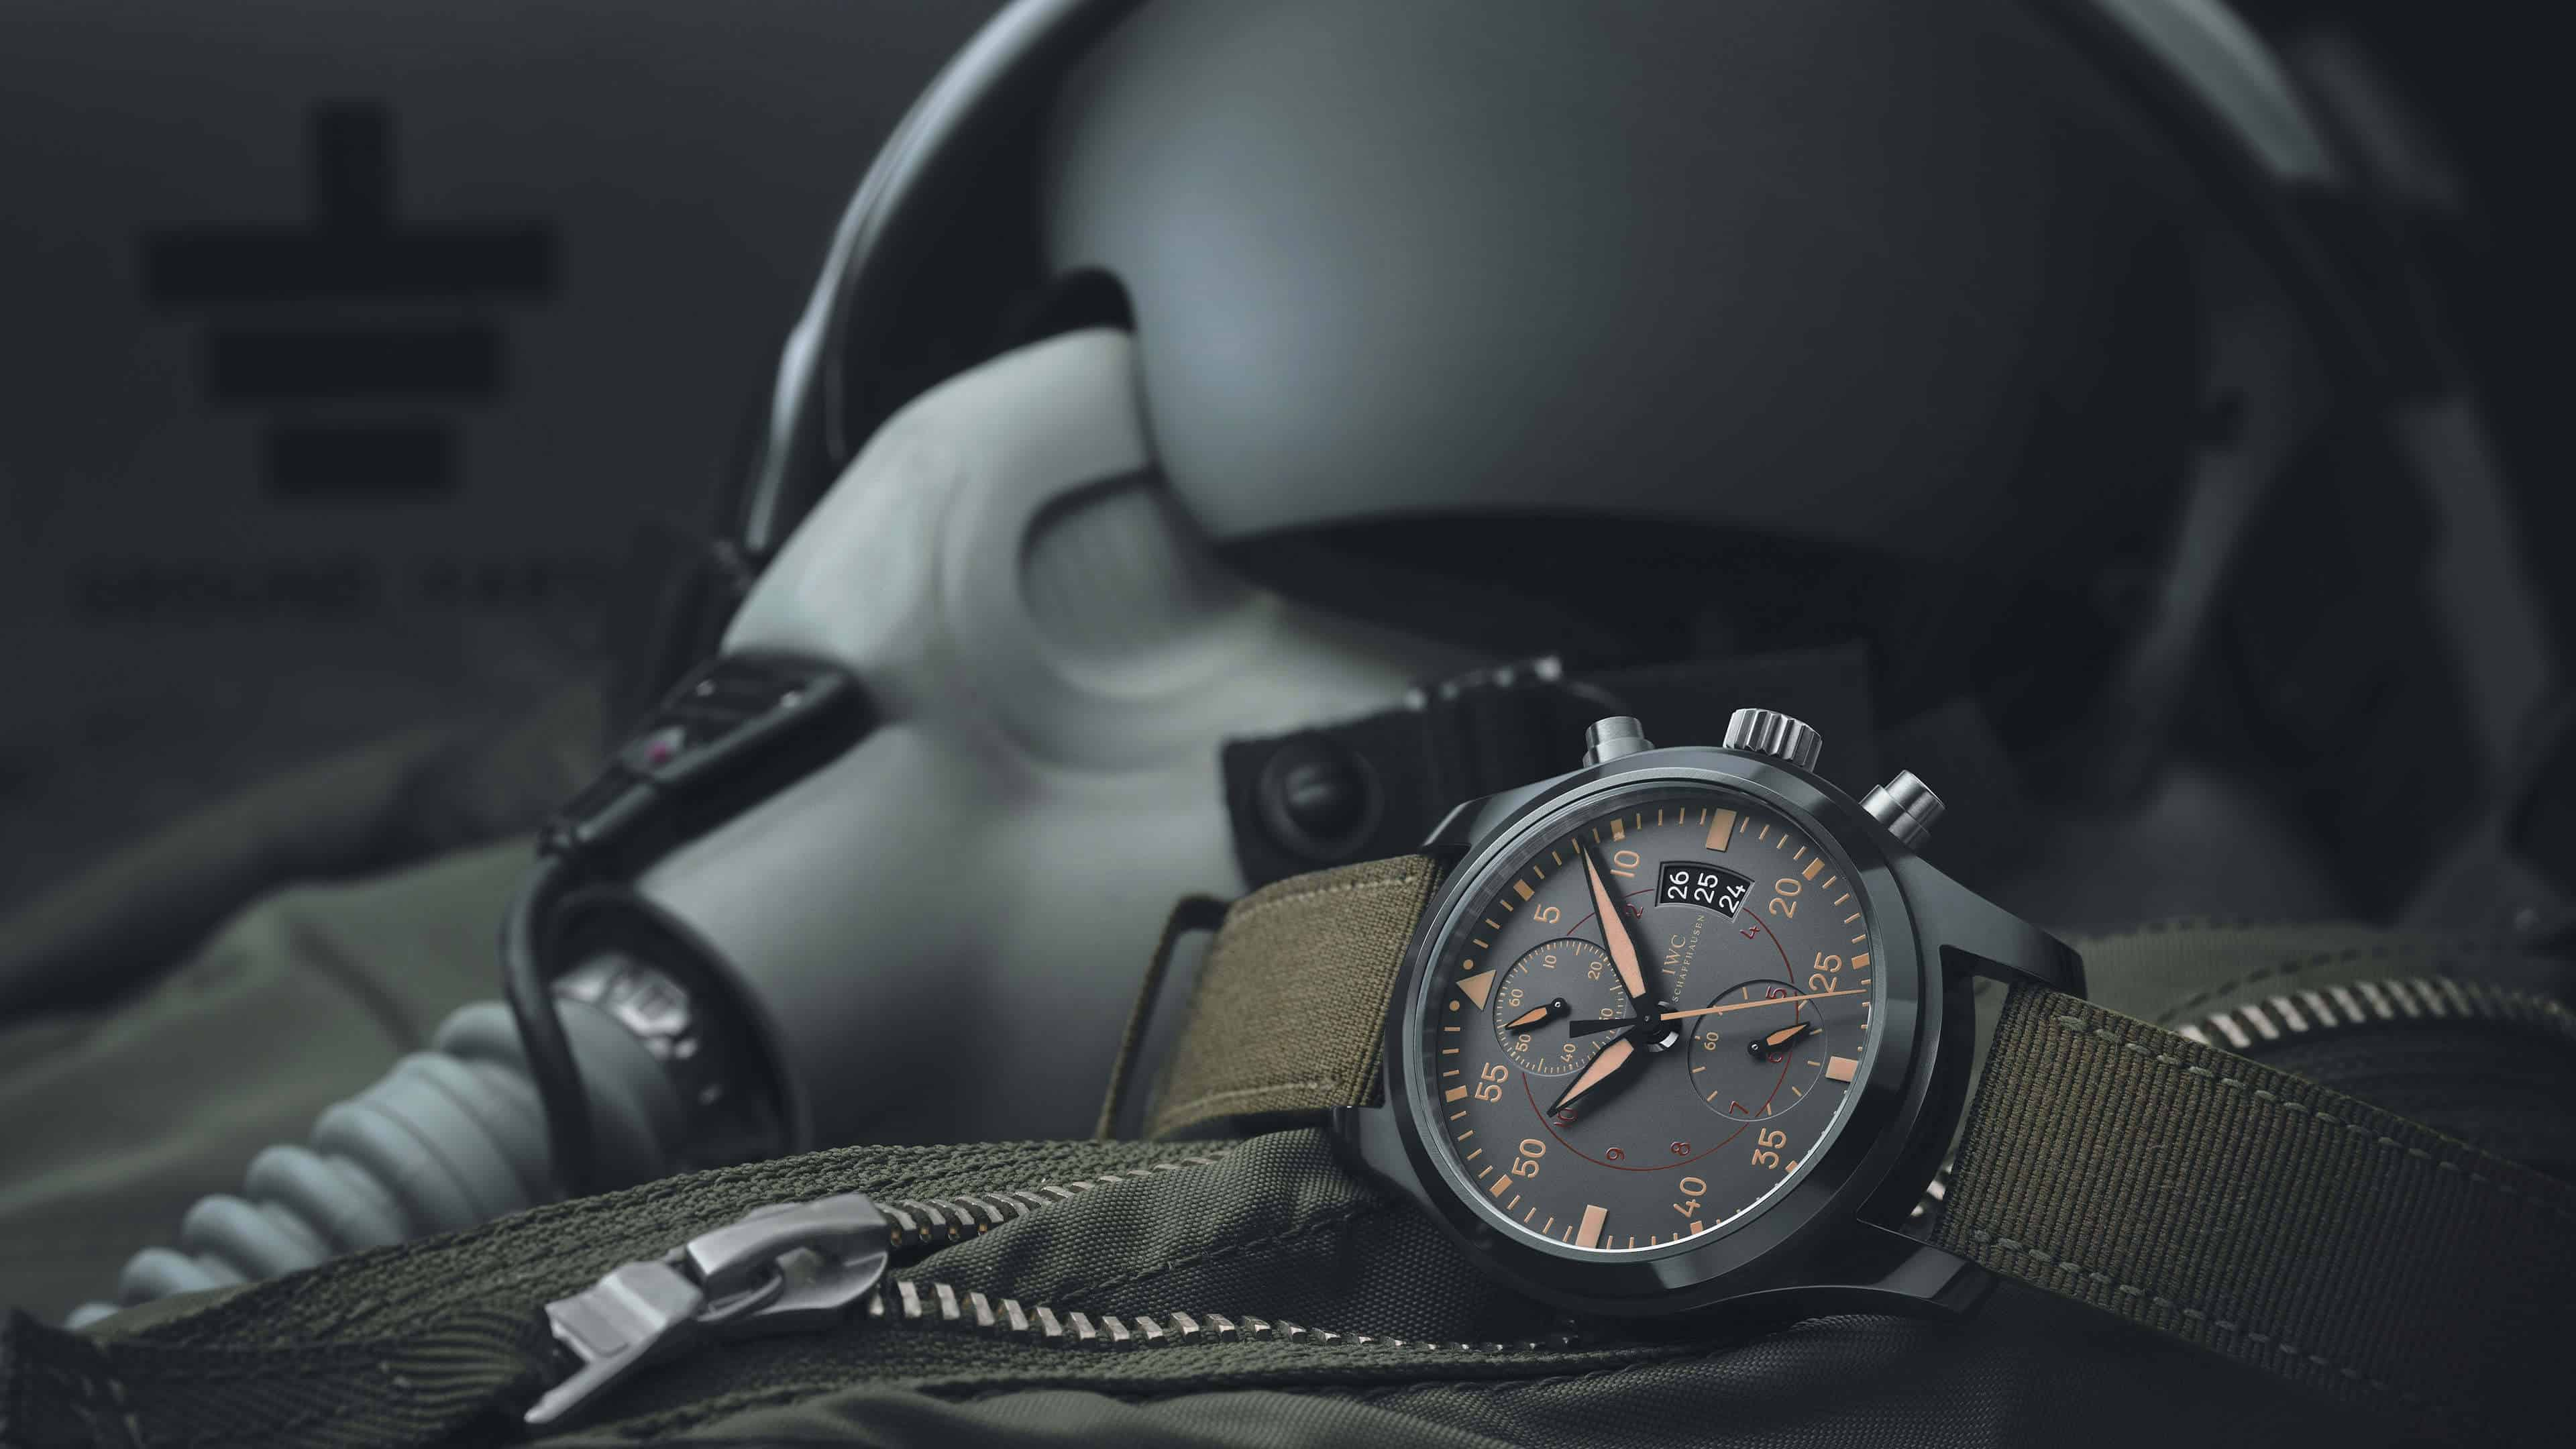 iwc pilot chronograph top gun miramar watch uhd 4k wallpaper